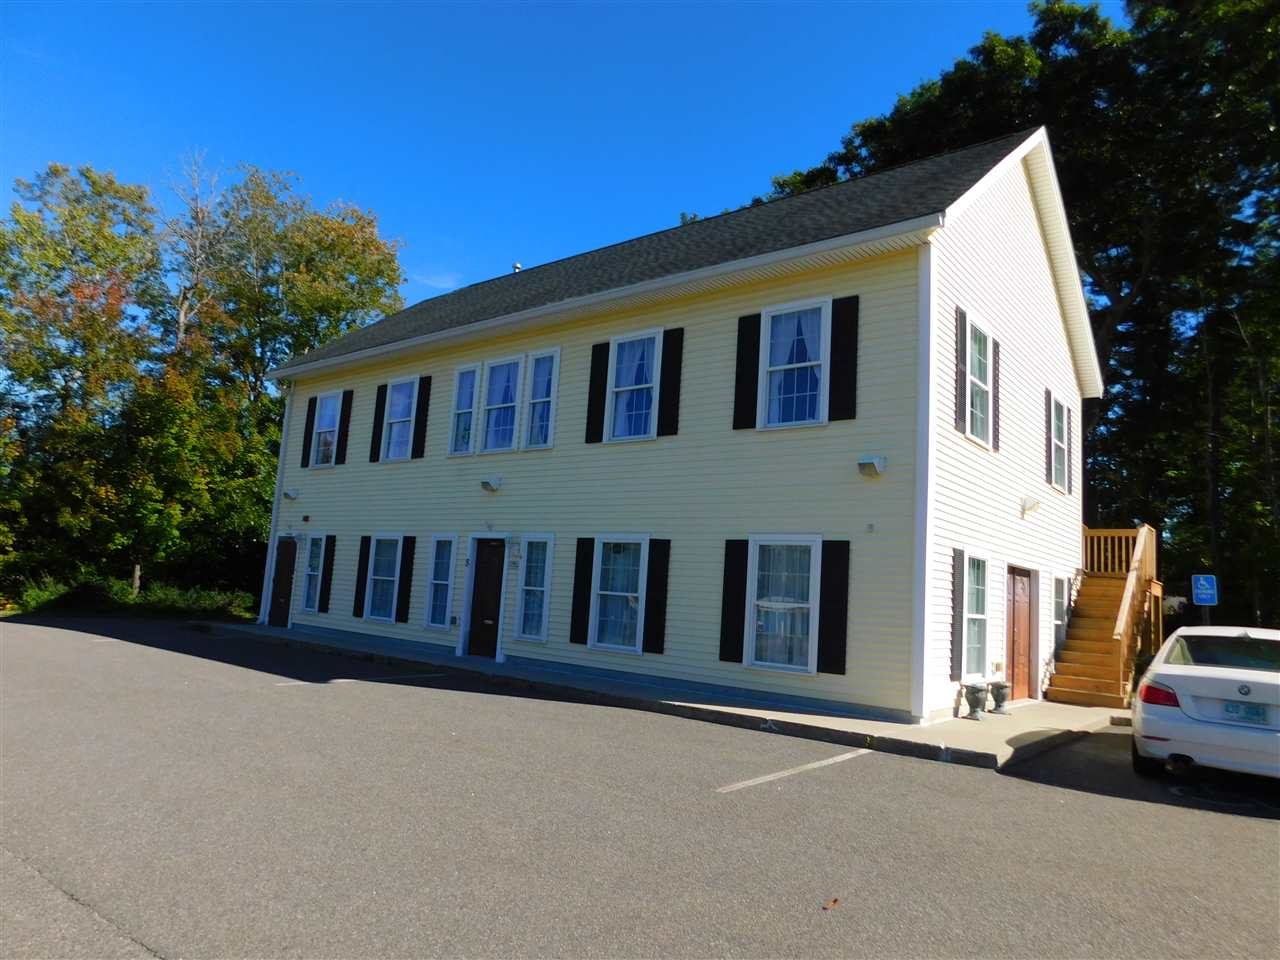 MLS 4725977: 8 Mohawk Drive-Unit 2nd floor, Londonderry NH